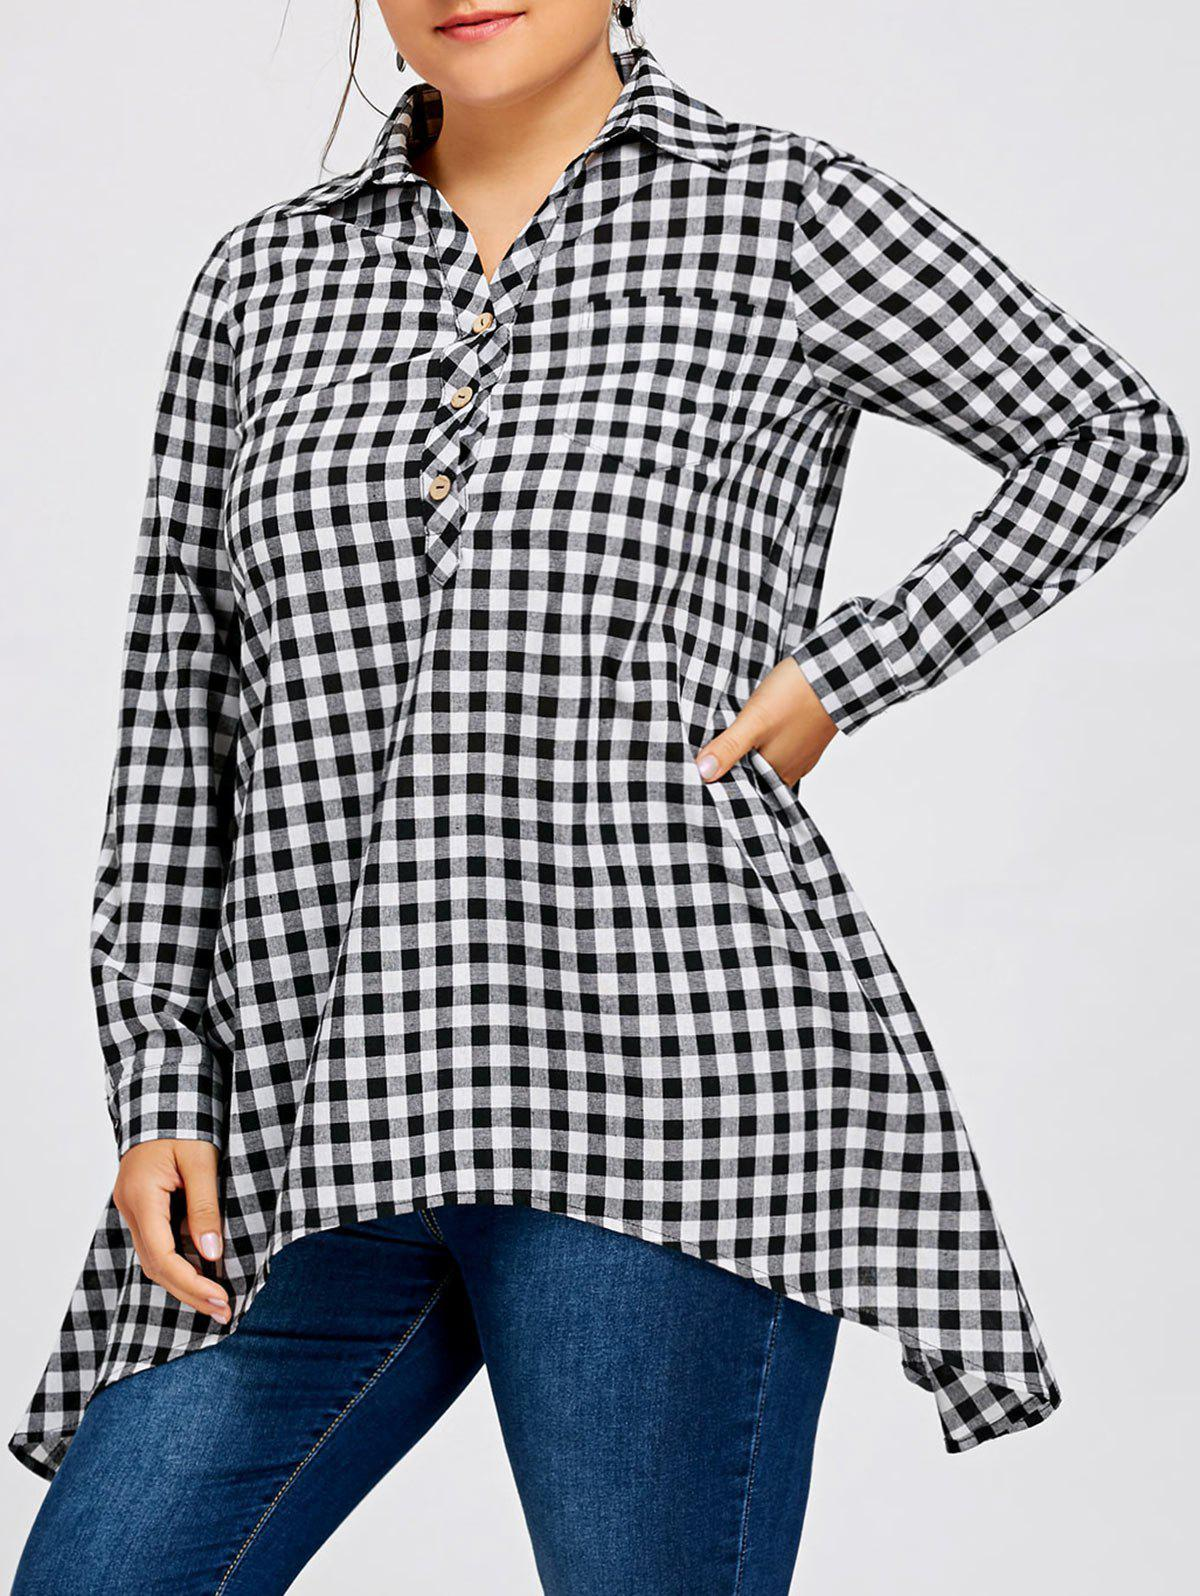 Plus Size Asymmetric Plaid Long Sleeve Shirt with PocketWOMEN<br><br>Size: 3XL; Color: CHECKED; Material: Polyester,Spandex; Shirt Length: Long; Sleeve Length: Full; Collar: Shirt Collar; Style: Casual; Season: Fall,Spring; Embellishment: Button,Pockets; Pattern Type: Plaid; Weight: 0.3000kg; Package Contents: 1 x Shirt;